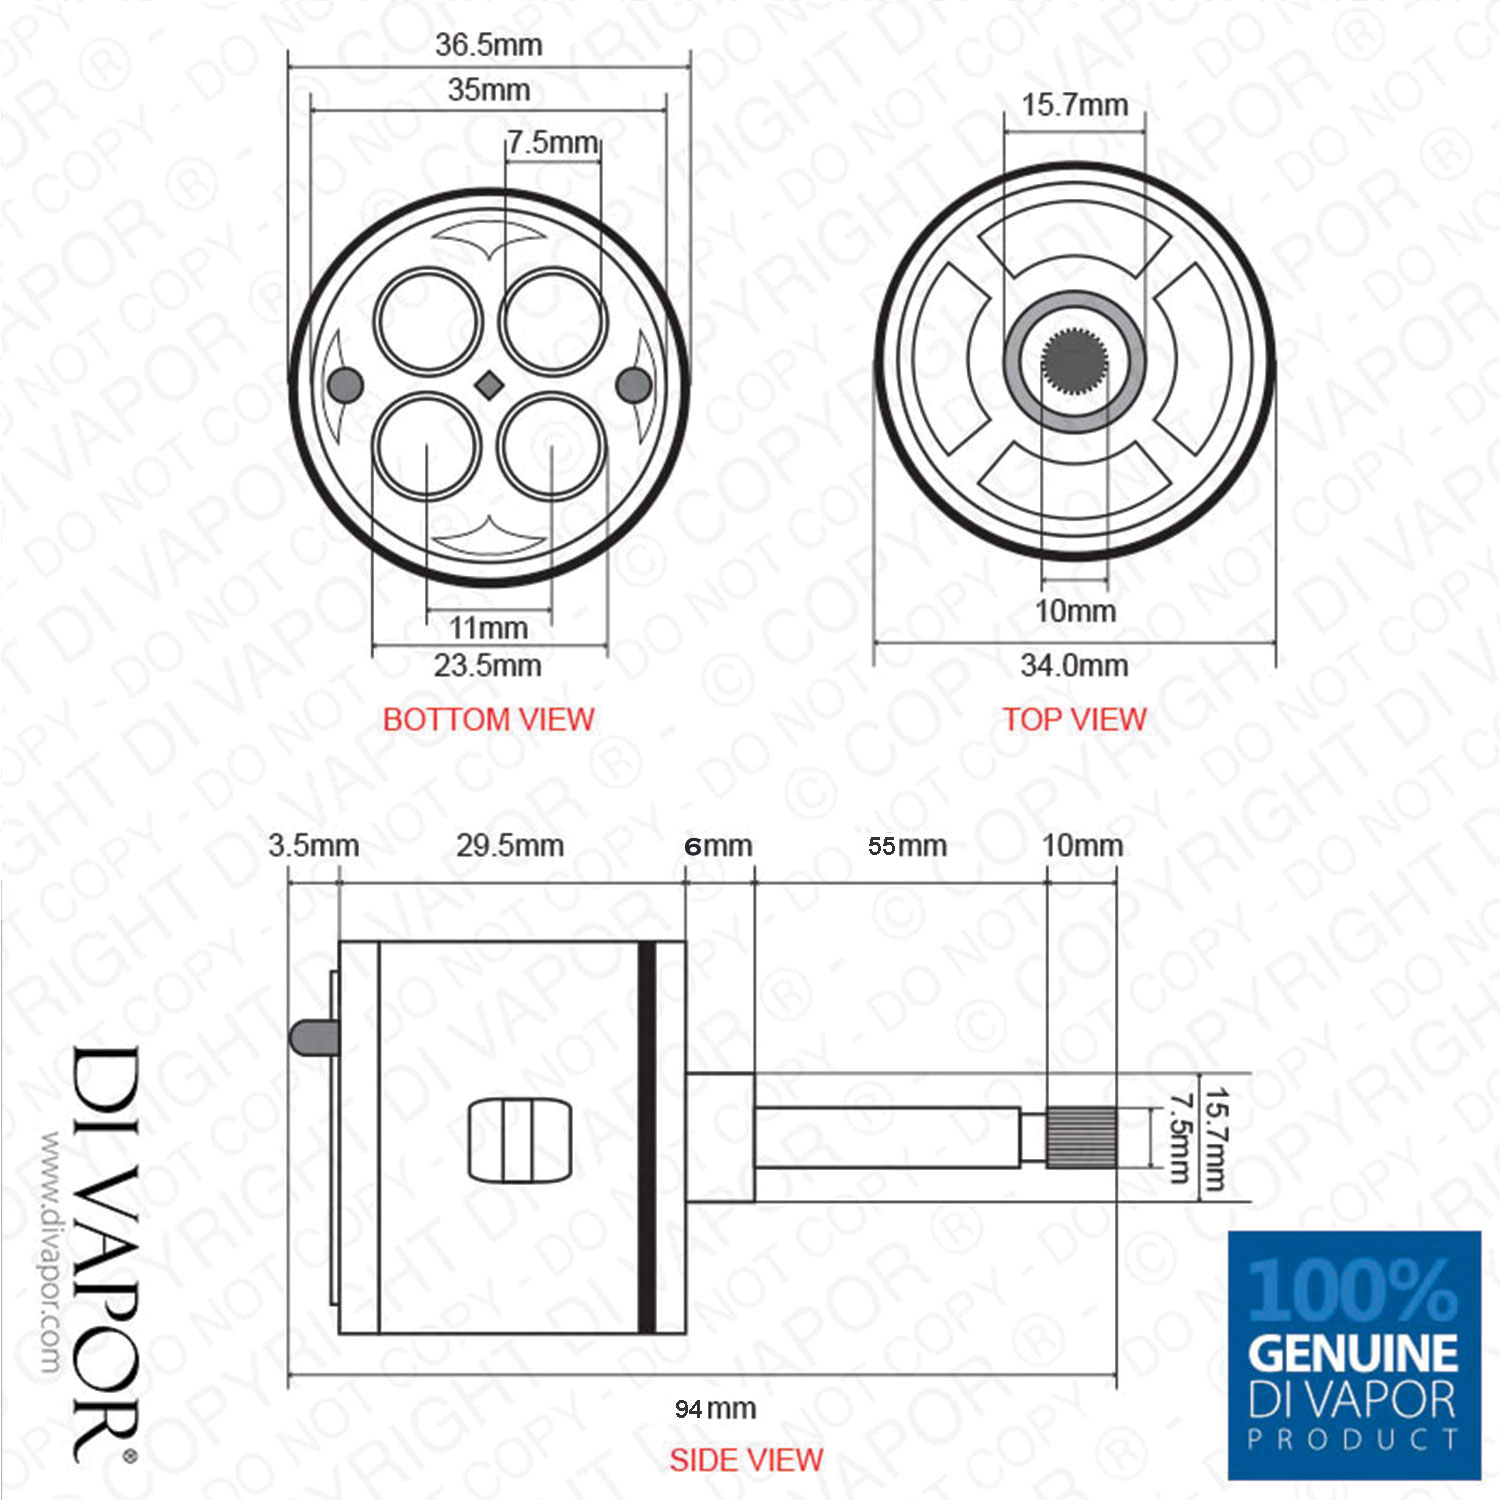 92mm 4 Way Shower Flow Diverter Valve Cartridge